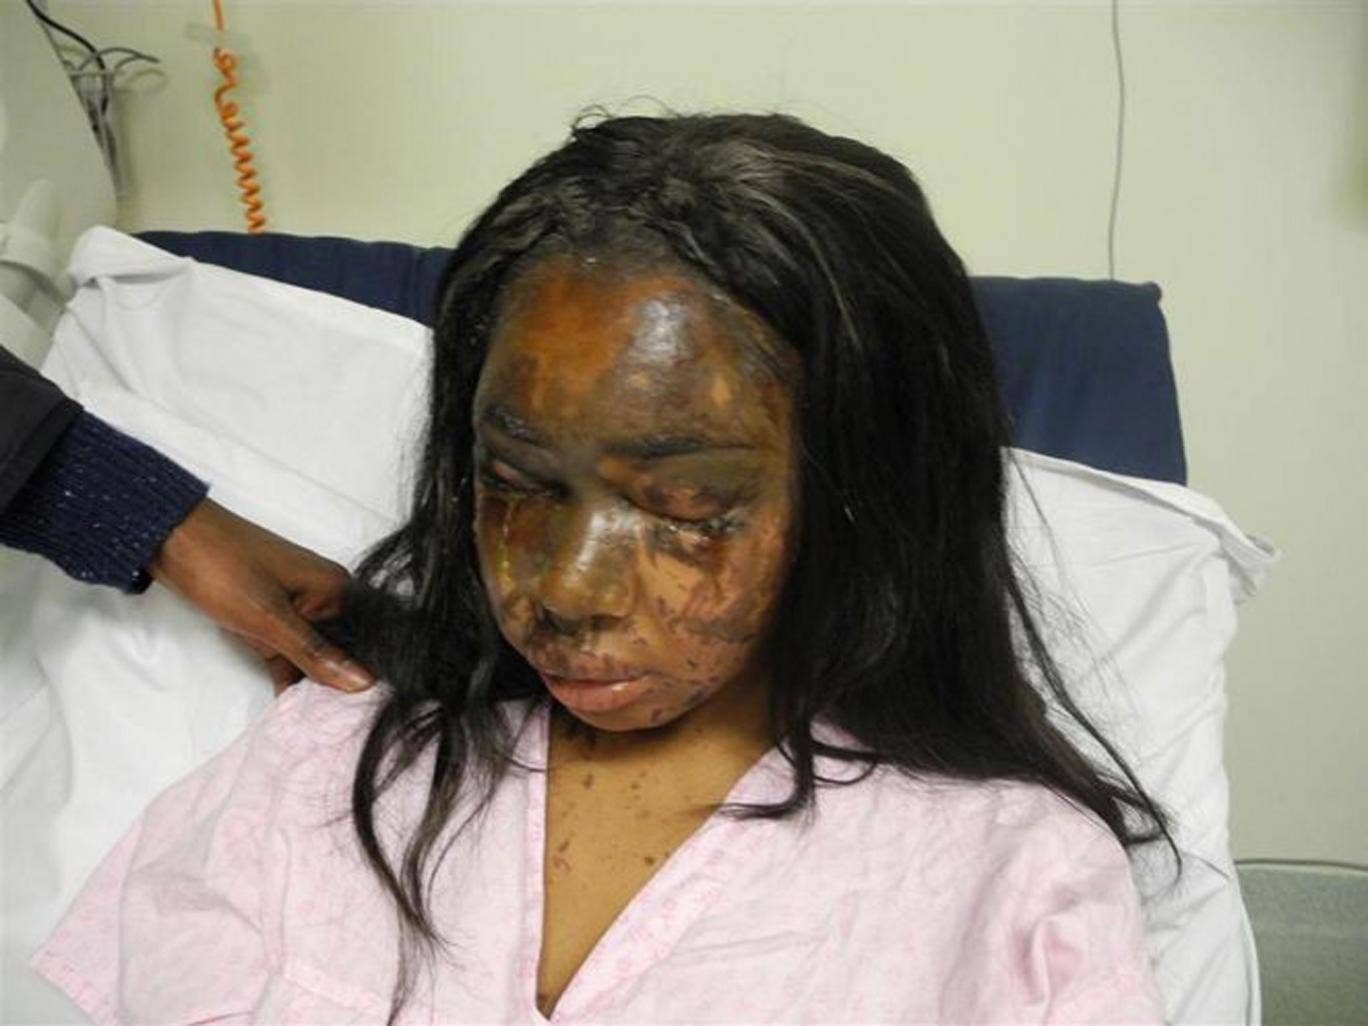 Naomi Oni after she acid thrown in her face by Mary Konye